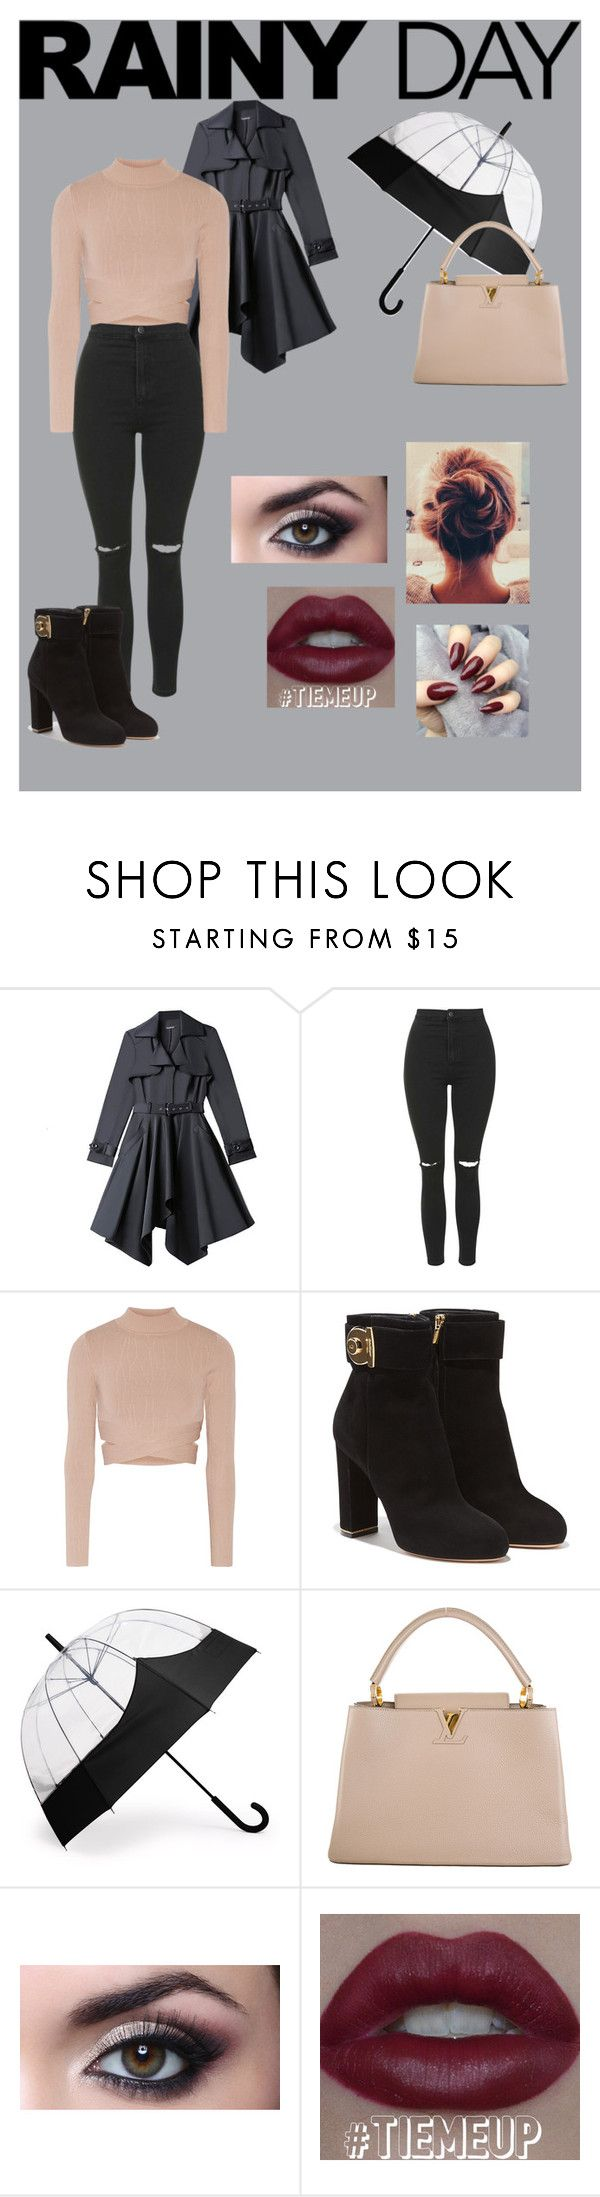 """Rainny Day"" by anasofiamoreira82 ❤ liked on Polyvore featuring Bebe, Topshop, Jonathan Simkhai, Salvatore Ferragamo, Hunter and Louis Vuitton"